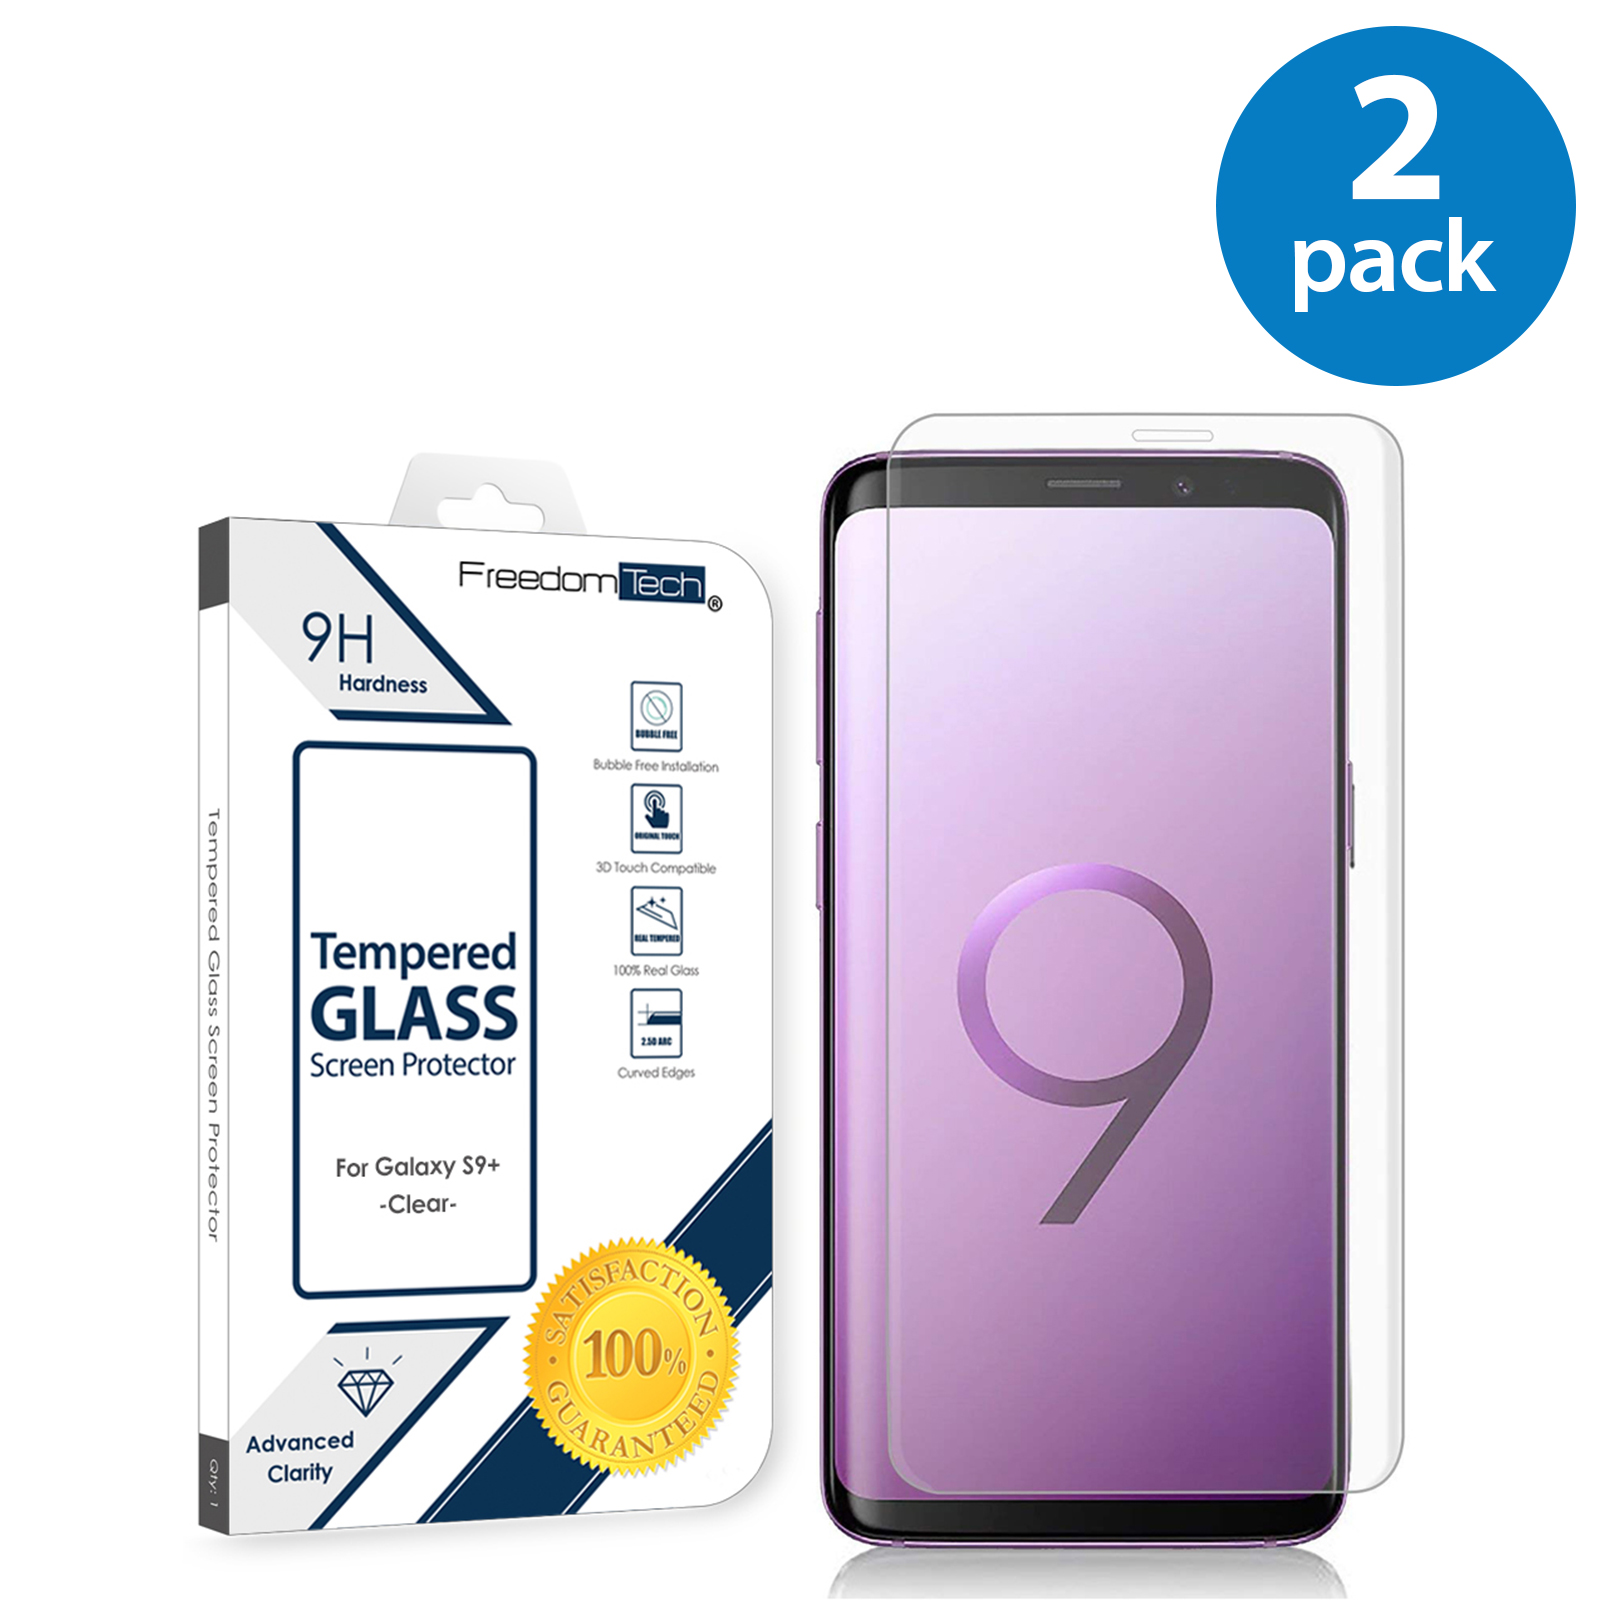 2x Samsung Galaxy S9 Plus Screen Protector Glass Film Full Cover 3D Curved Case Friendly Screen Protector Tempered Glass for Samsung Galaxy S9 Plus Clear